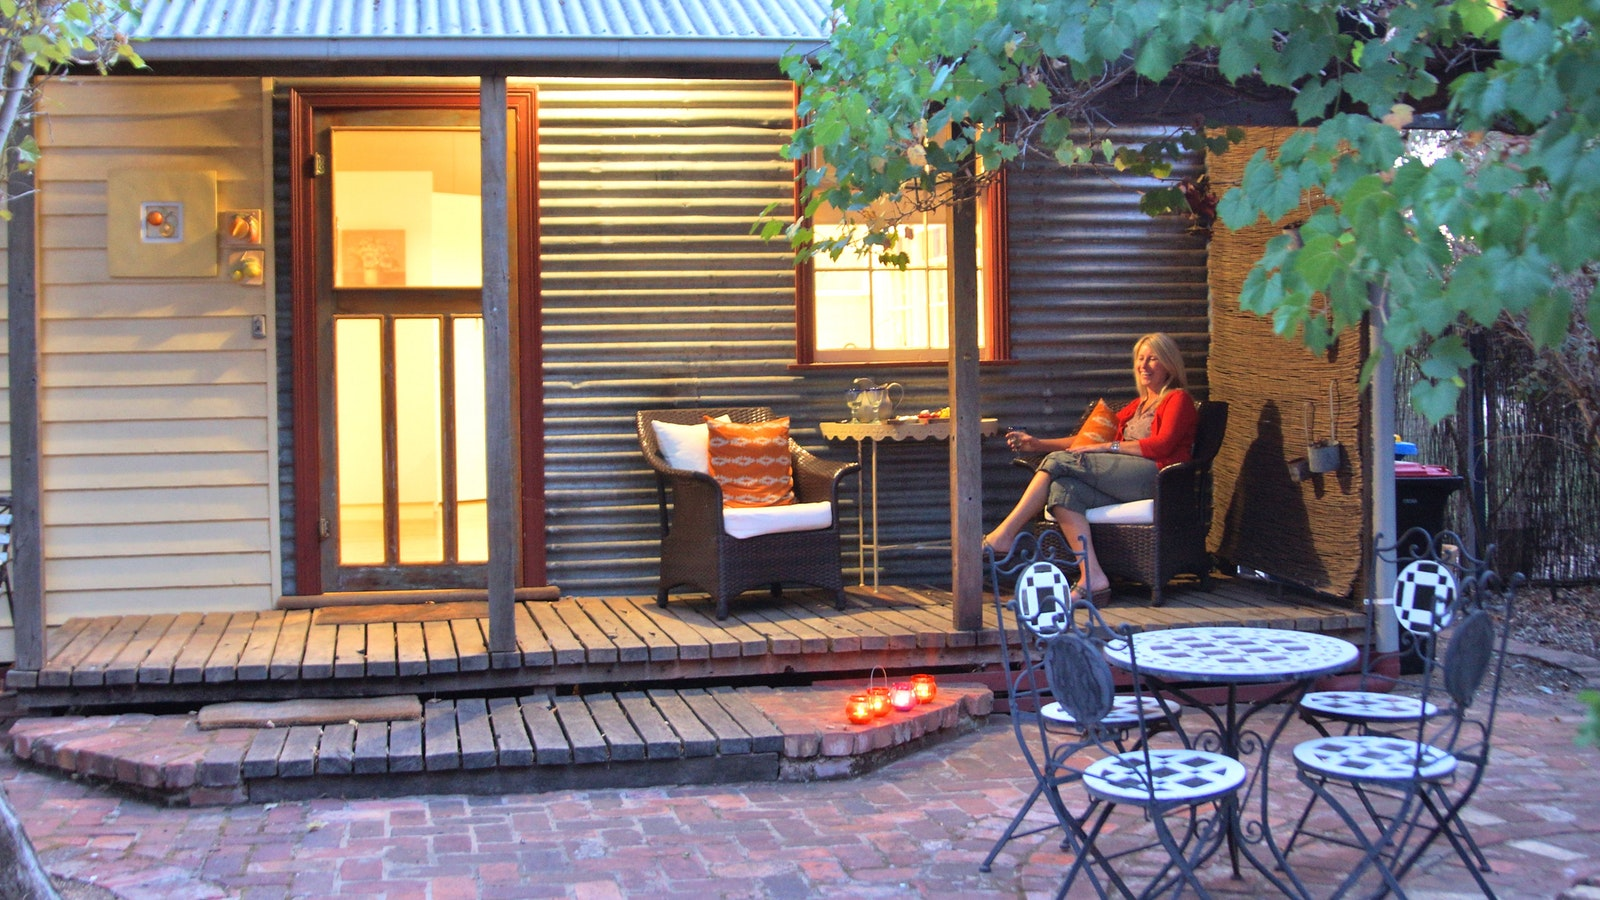 Relax on the gorgeous verandah overlooking the gardens